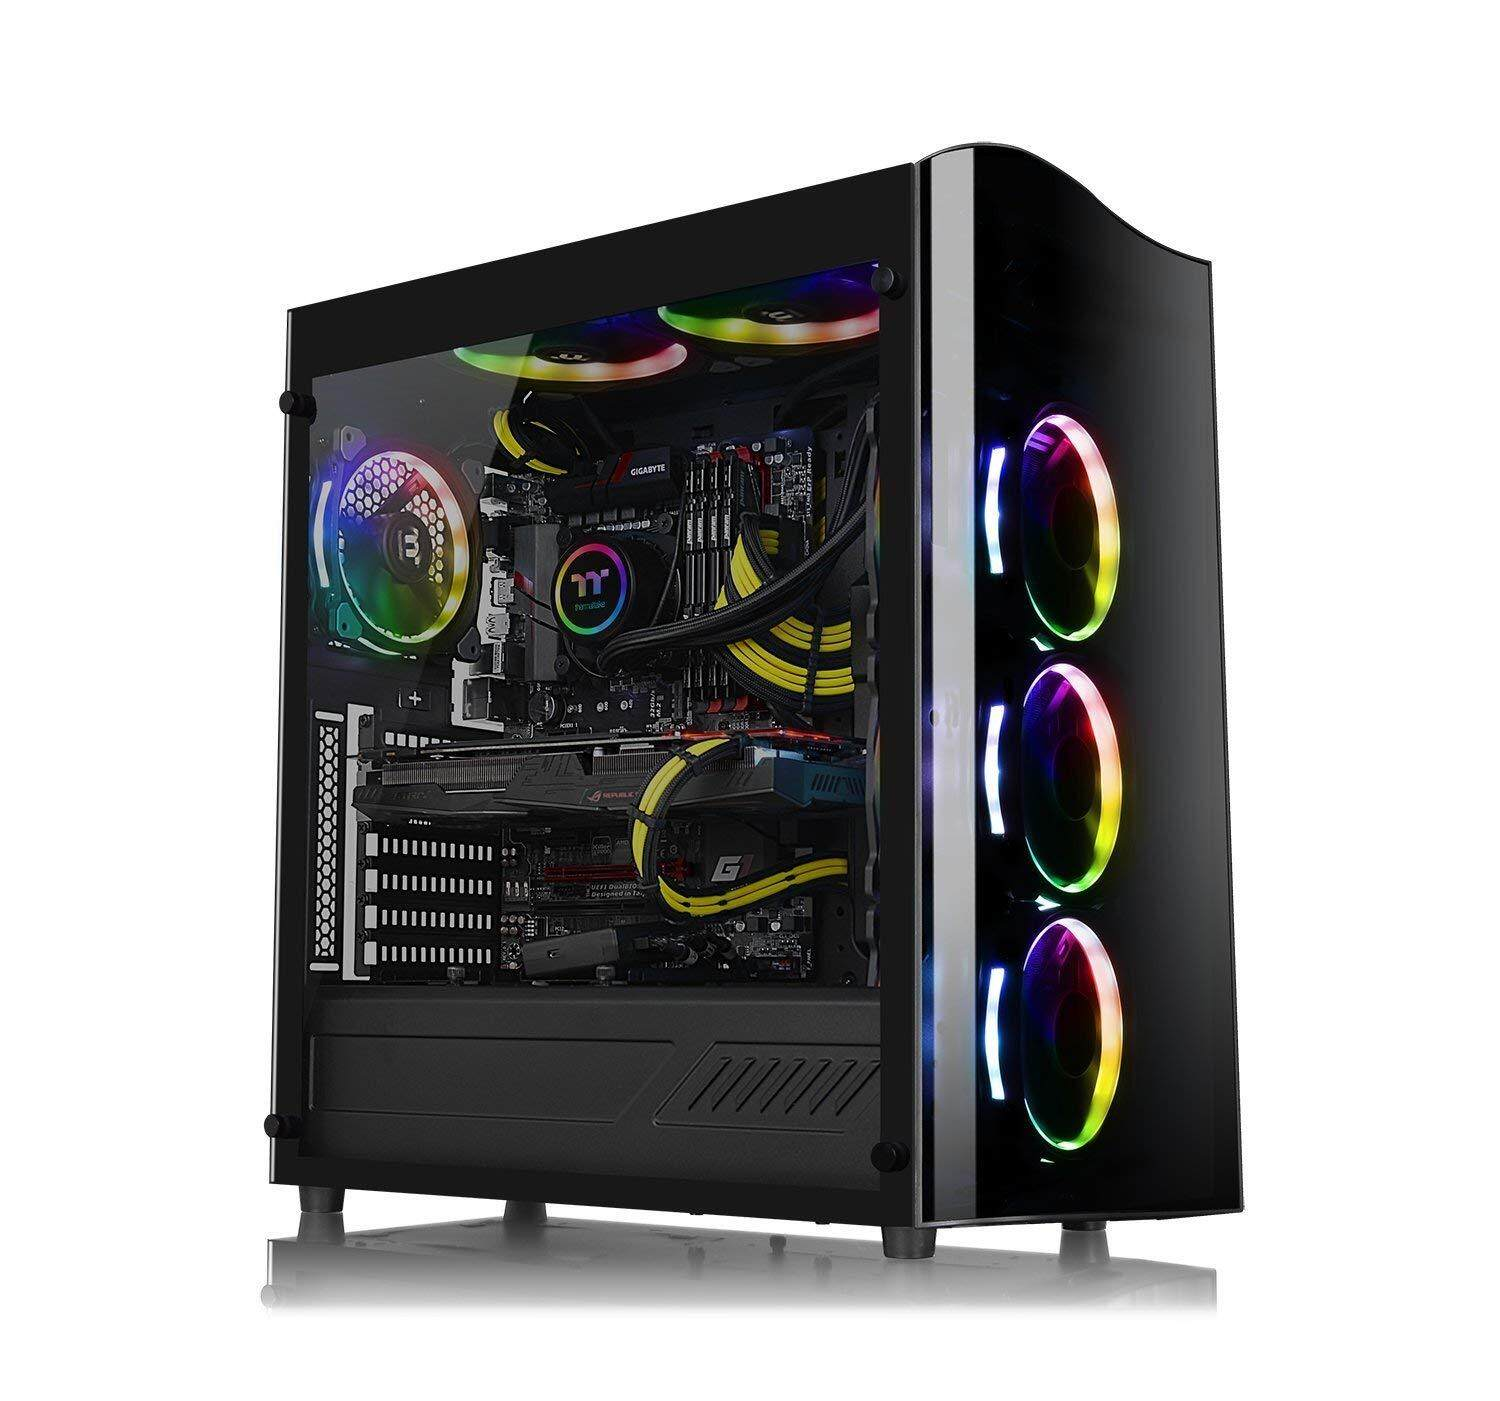 Thermaltake View 22 Tempered Glass SPCC ATX Modular Mid Tower Gaming PC Computer Case (4mm Tempered Glass, 1x Pre-Installed 12cm Fan) Malaysia